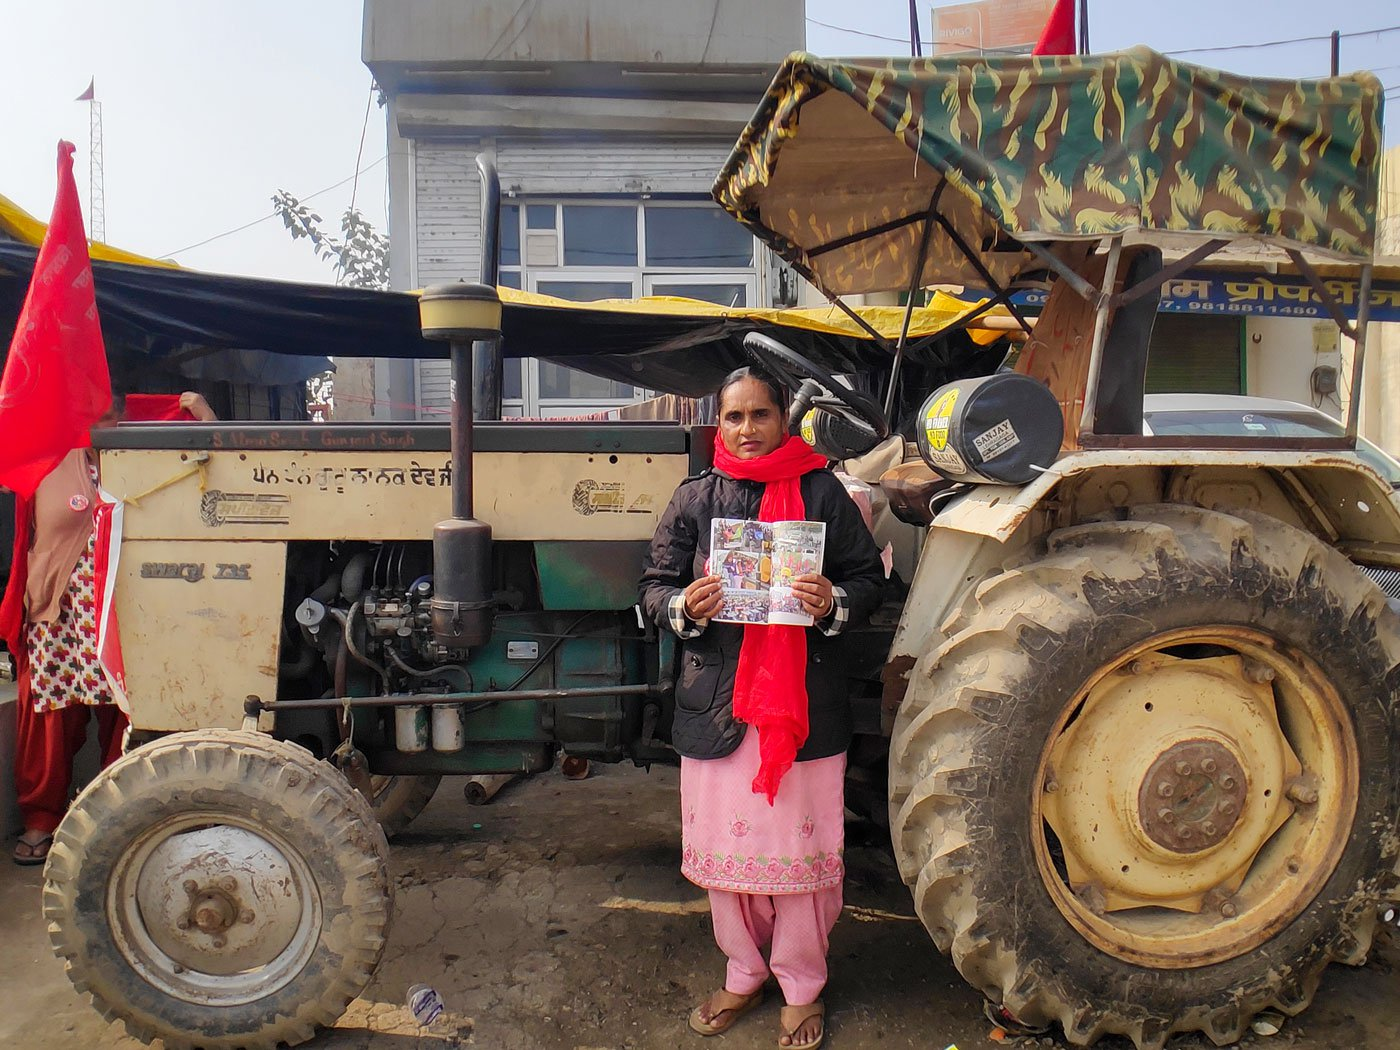 Sarbjeet Kaur drove her tractor for more than 400 kilometres from her village in Punjab to the Singhu farmers' protest site, and is now ready to participate in the tractor rally on January 26